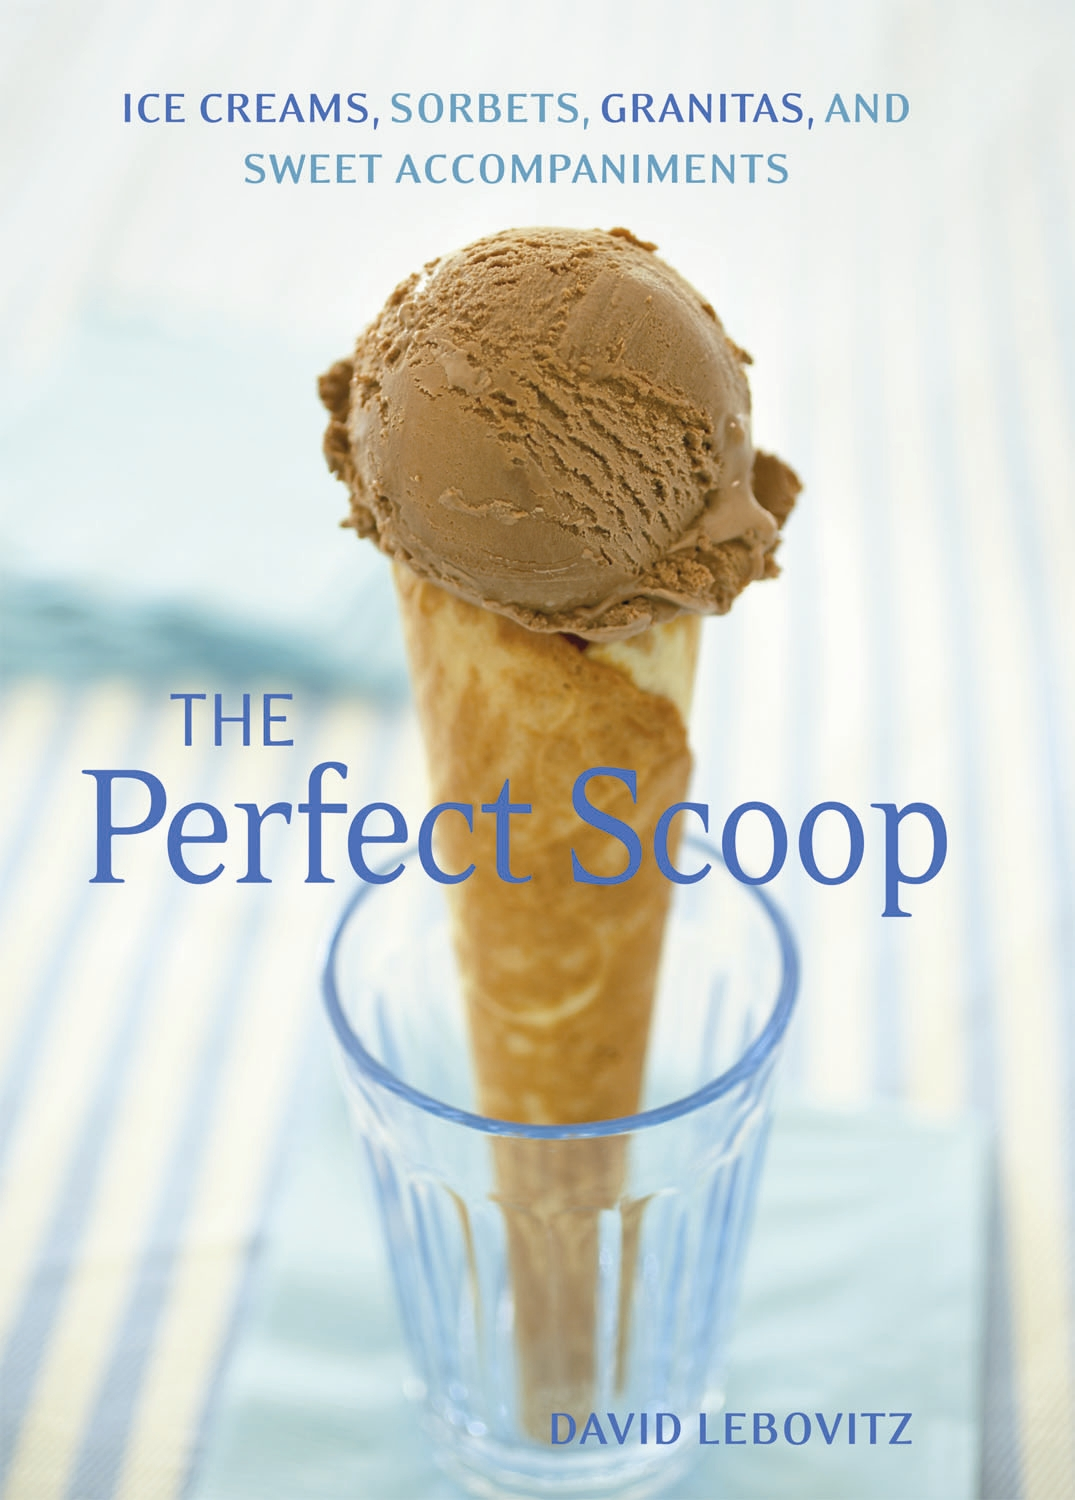 The skinny ice cream maker: delicious lower fat, lower calorie ice cream, frozen yogurt  sorbet recipes for your ice